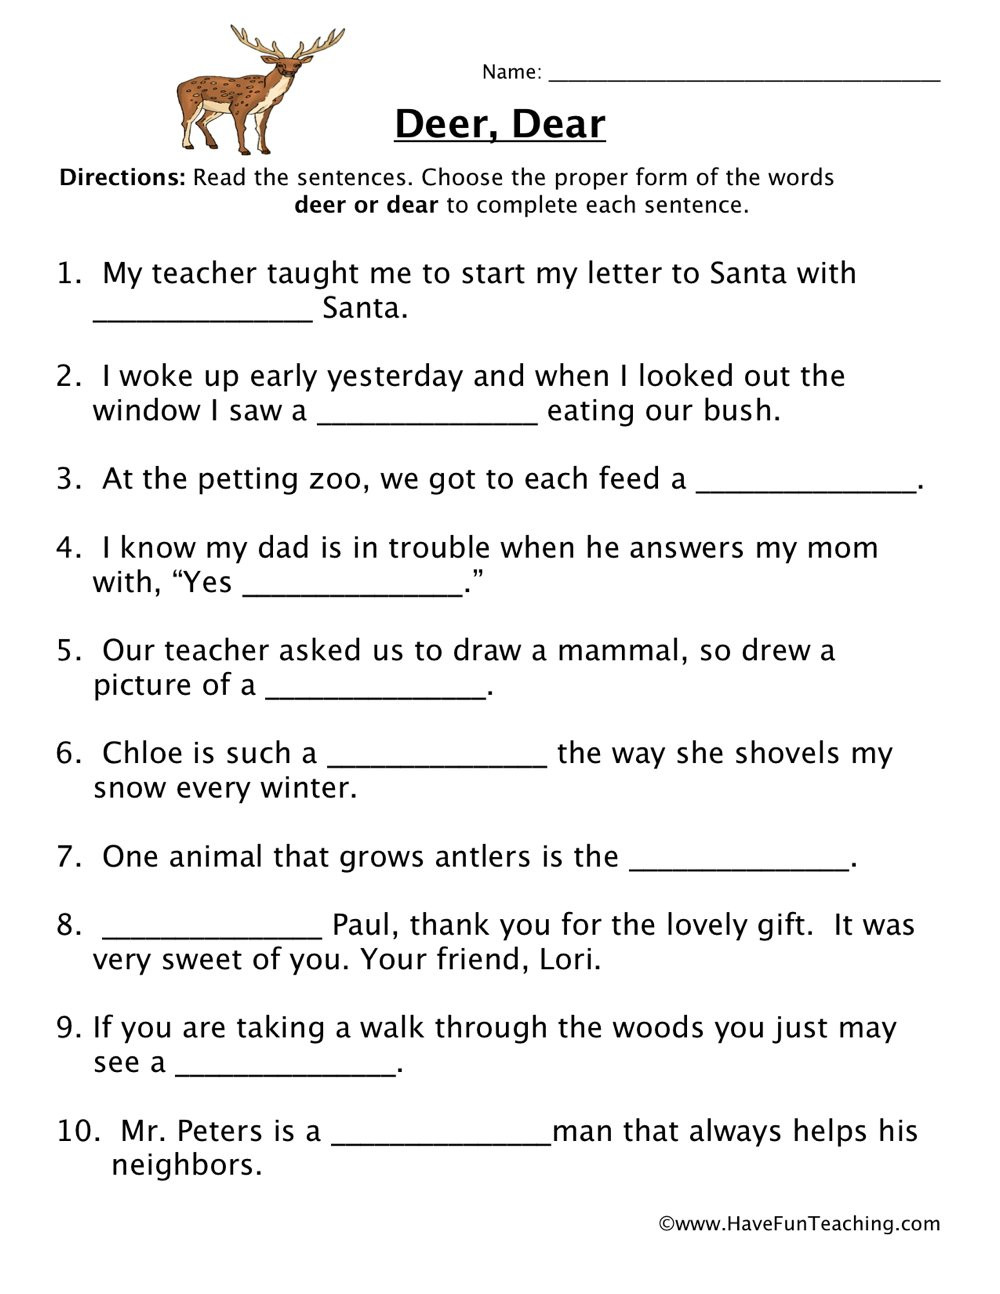 Homophones Worksheets for Grade 5 Deer Dear Homophones Worksheet